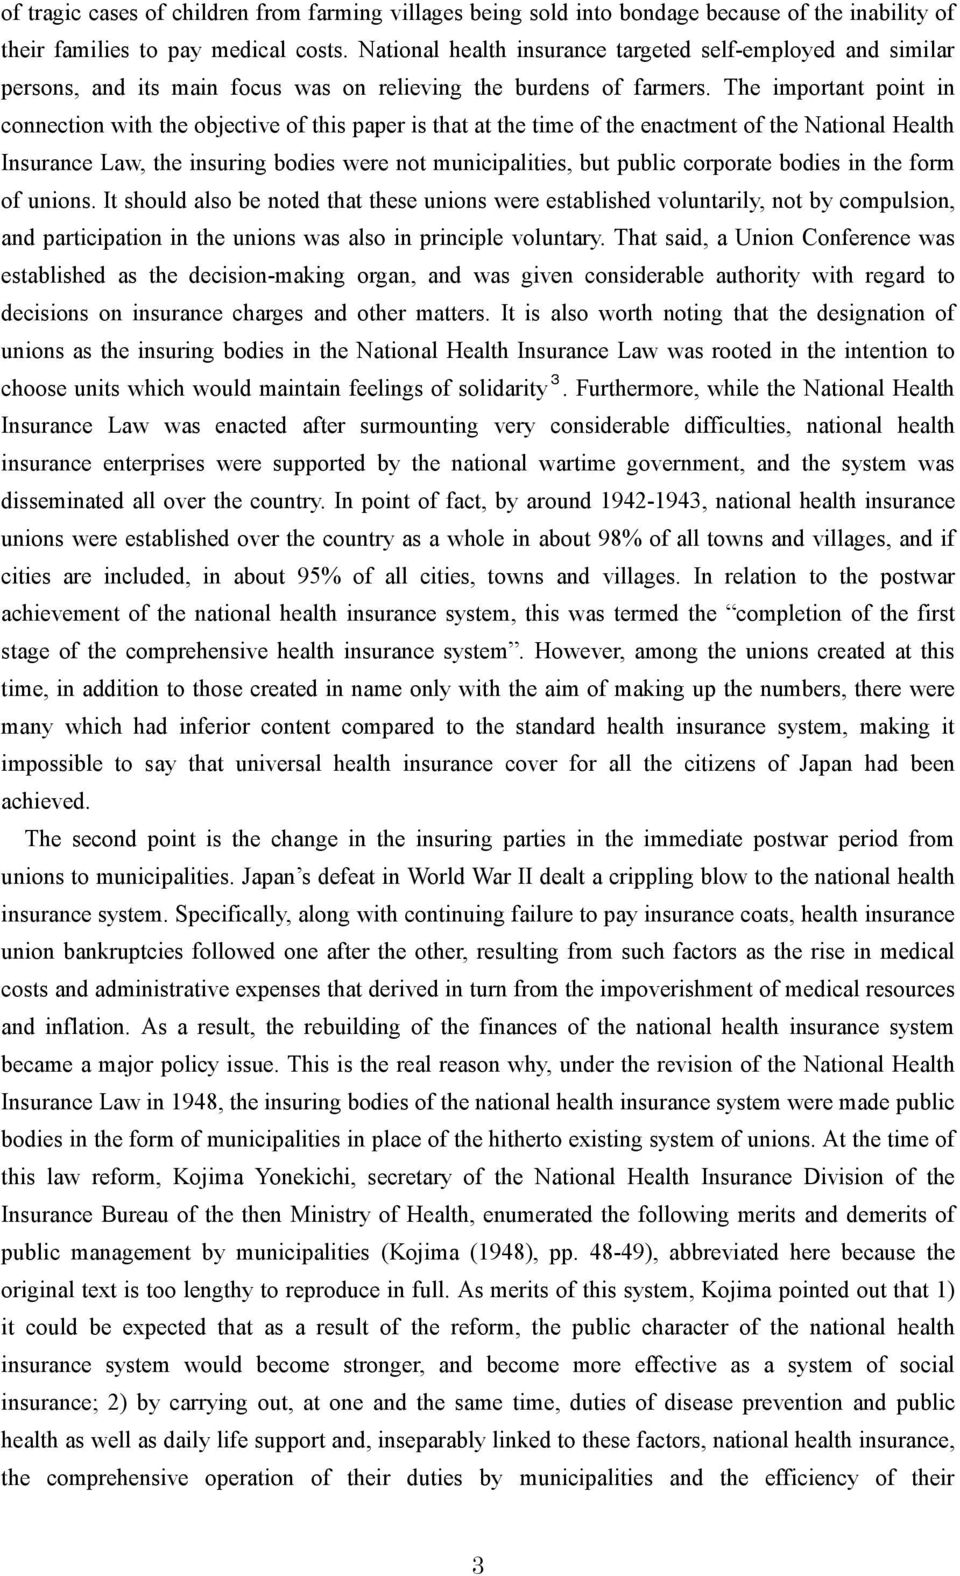 The important point in connection with the objective of this paper is that at the time of the enactment of the National Health Insurance Law, the insuring bodies were not municipalities, but public